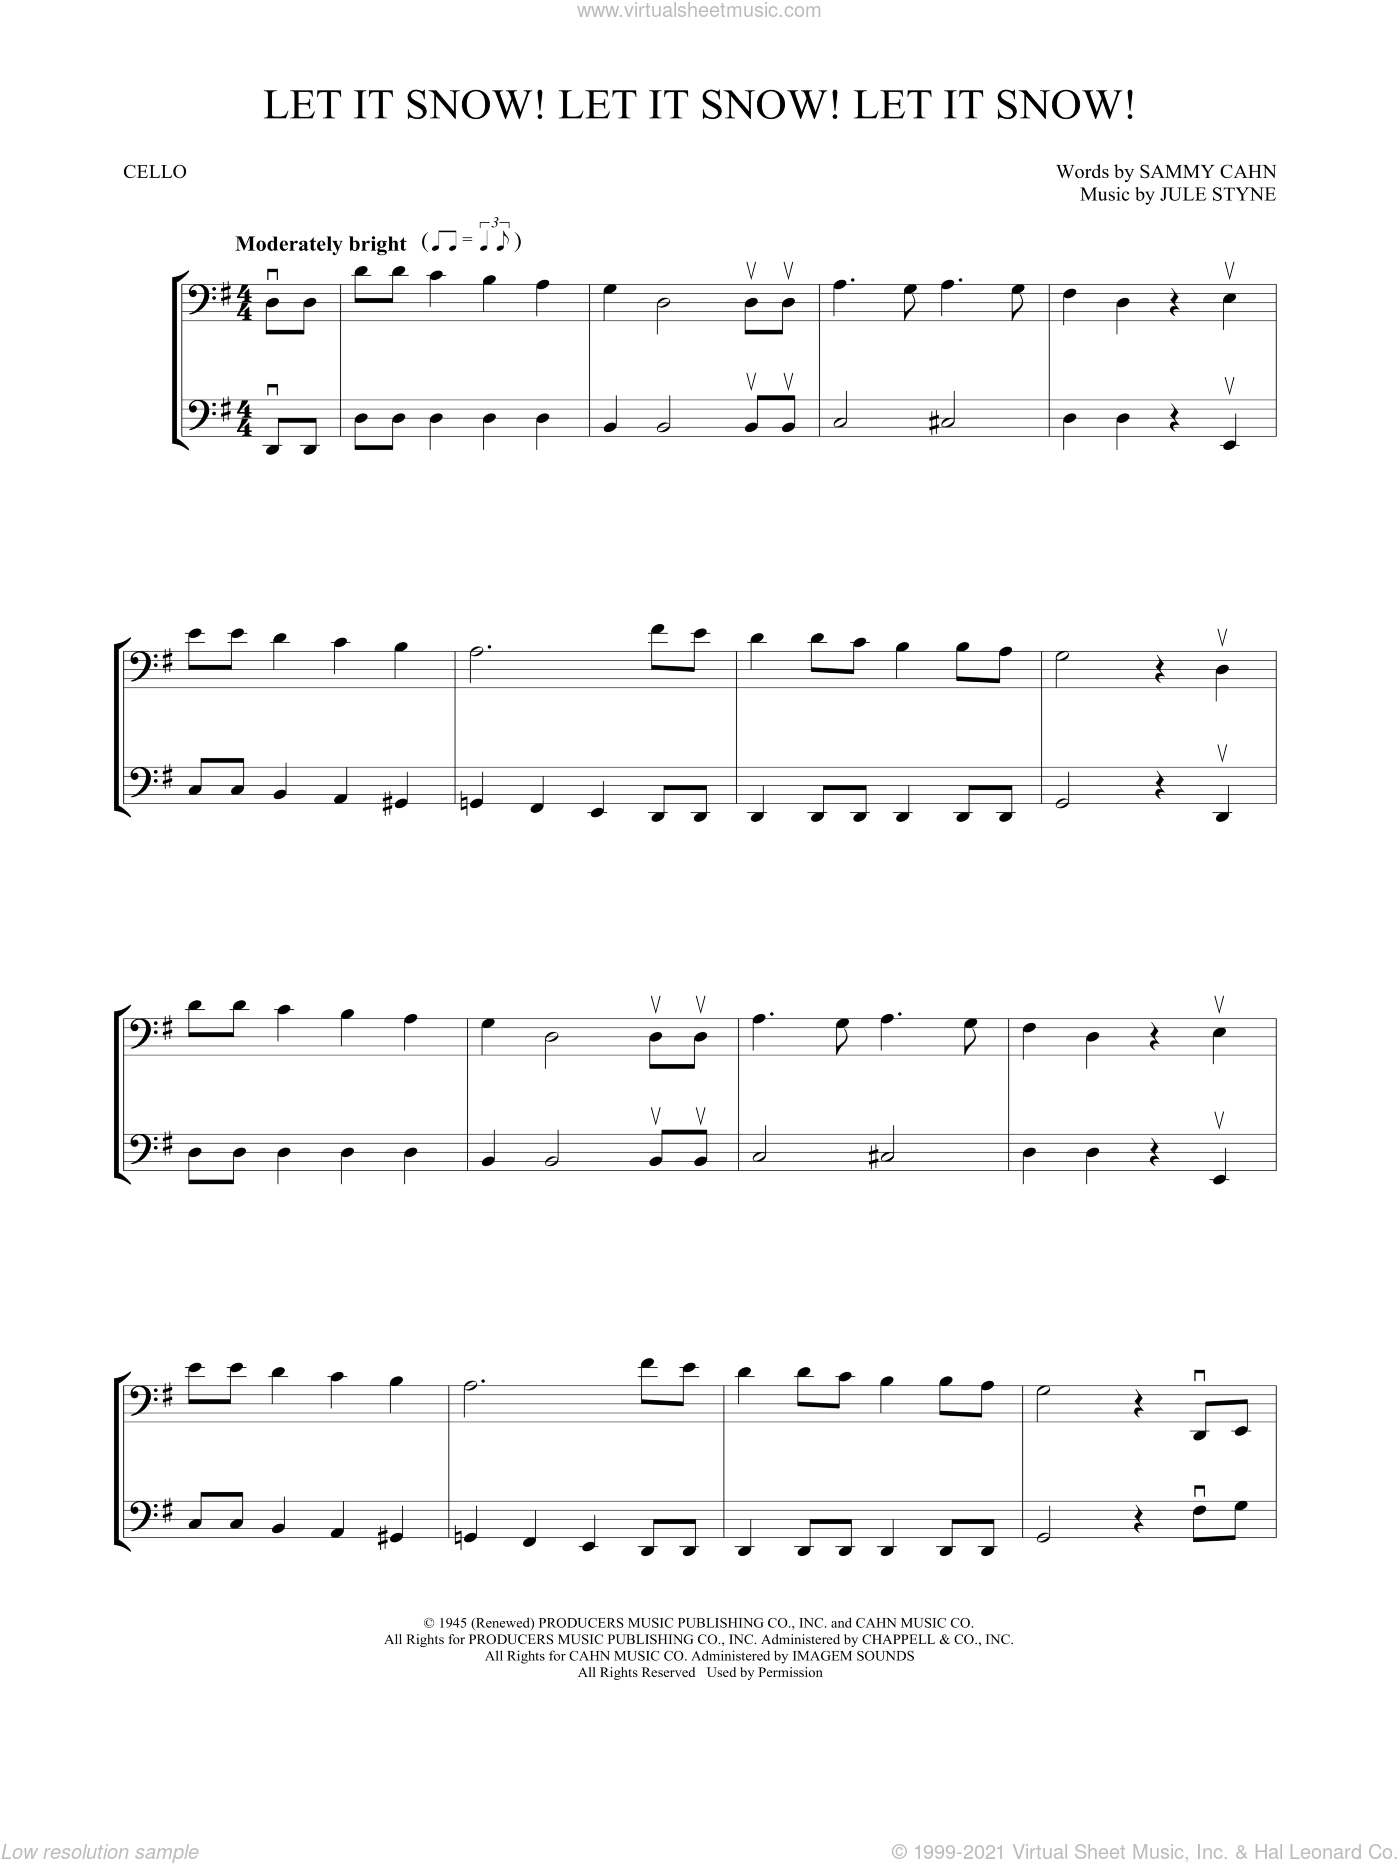 Let It Snow! Let It Snow! Let It Snow! sheet music for two cellos (duet, duets) by Sammy Cahn and Jule Styne, intermediate skill level